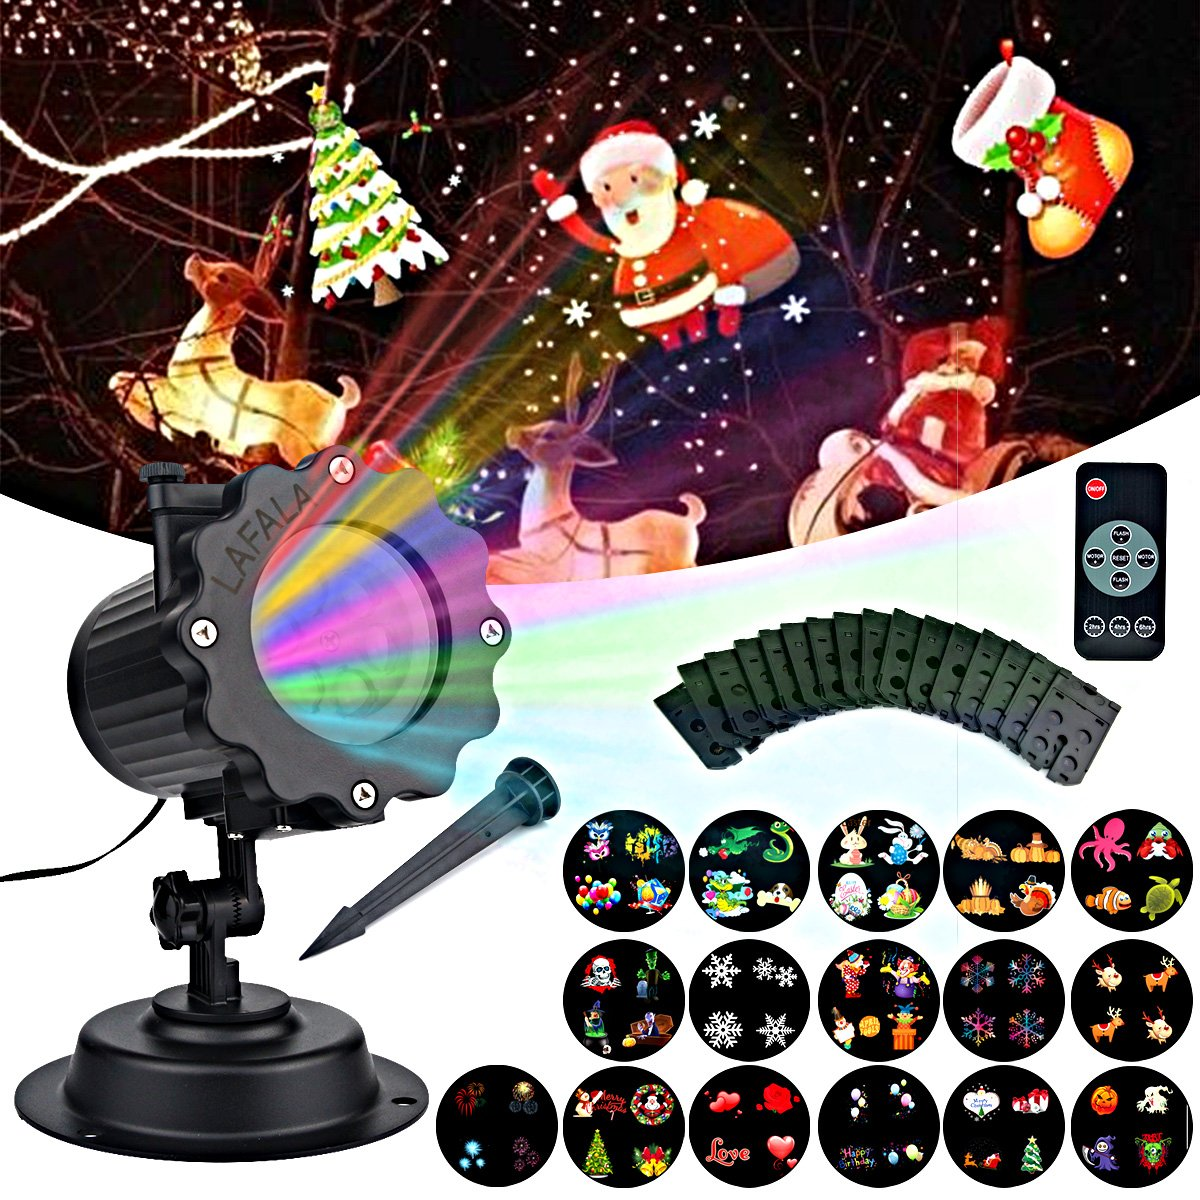 LAFALA Christmas Lights Projector-2017 Light Projector 16PCS Pattern slide laser LED Flood projector Landscape lamp Bulb Remote Control and Waterproof Perfect for Christmas Holiday Decorations